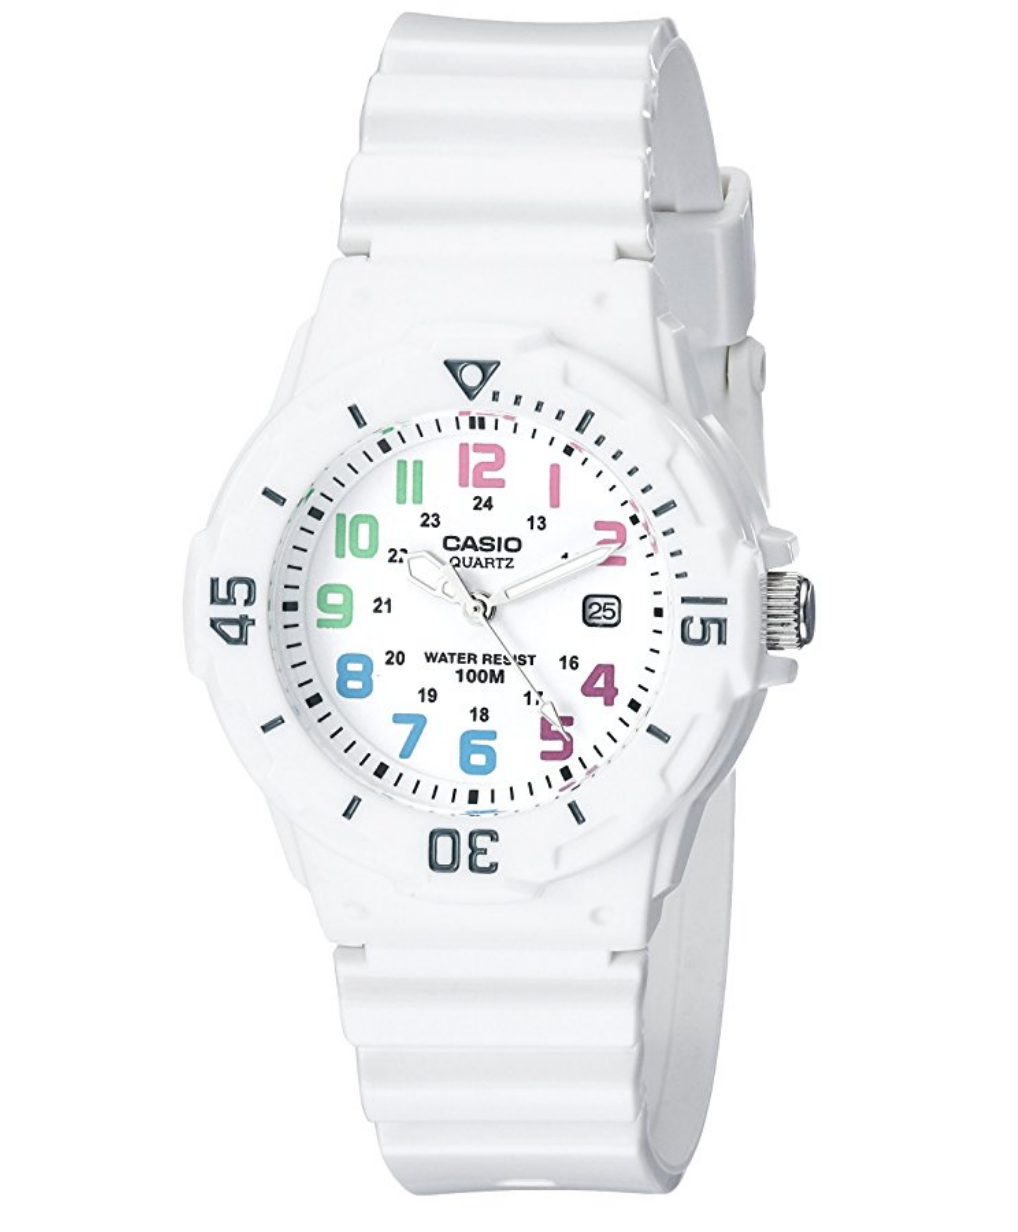 I am kind of obsessed with this watch--it's so bright, fun, and summer-y. Our 11-year-old is going to love it for her birthday!